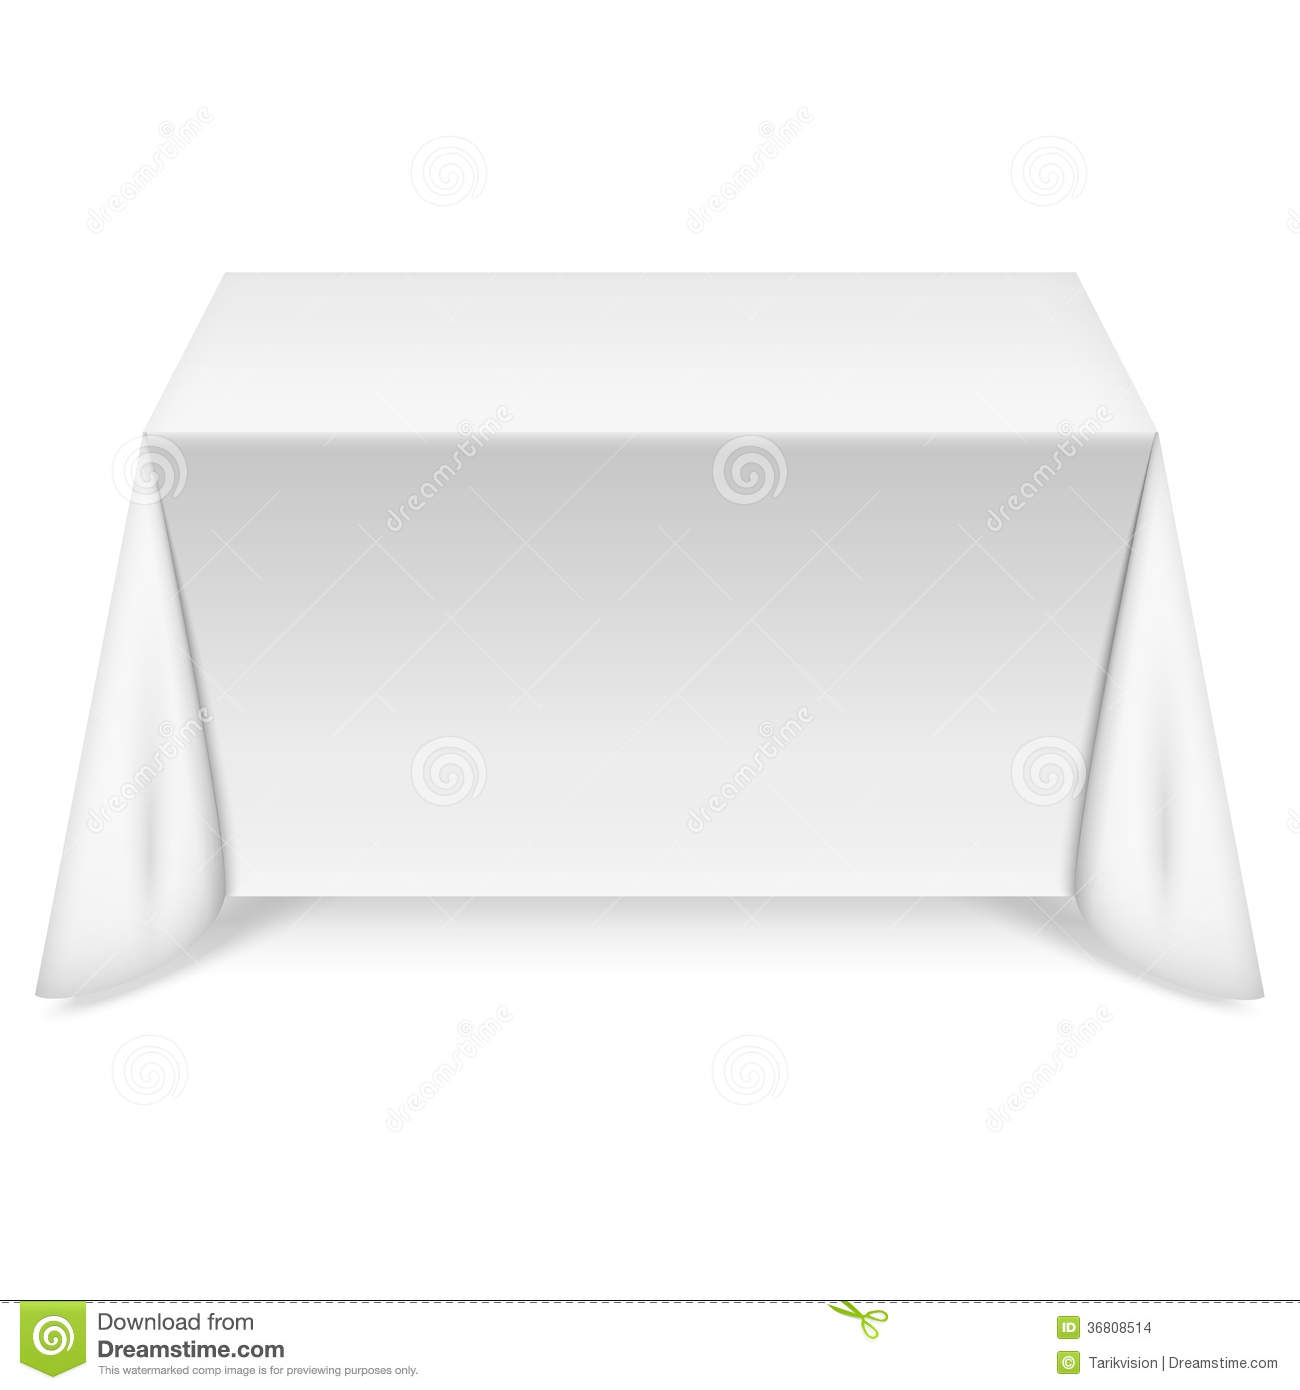 table rectangulaire avec la nappe blanche images stock image 36808514. Black Bedroom Furniture Sets. Home Design Ideas